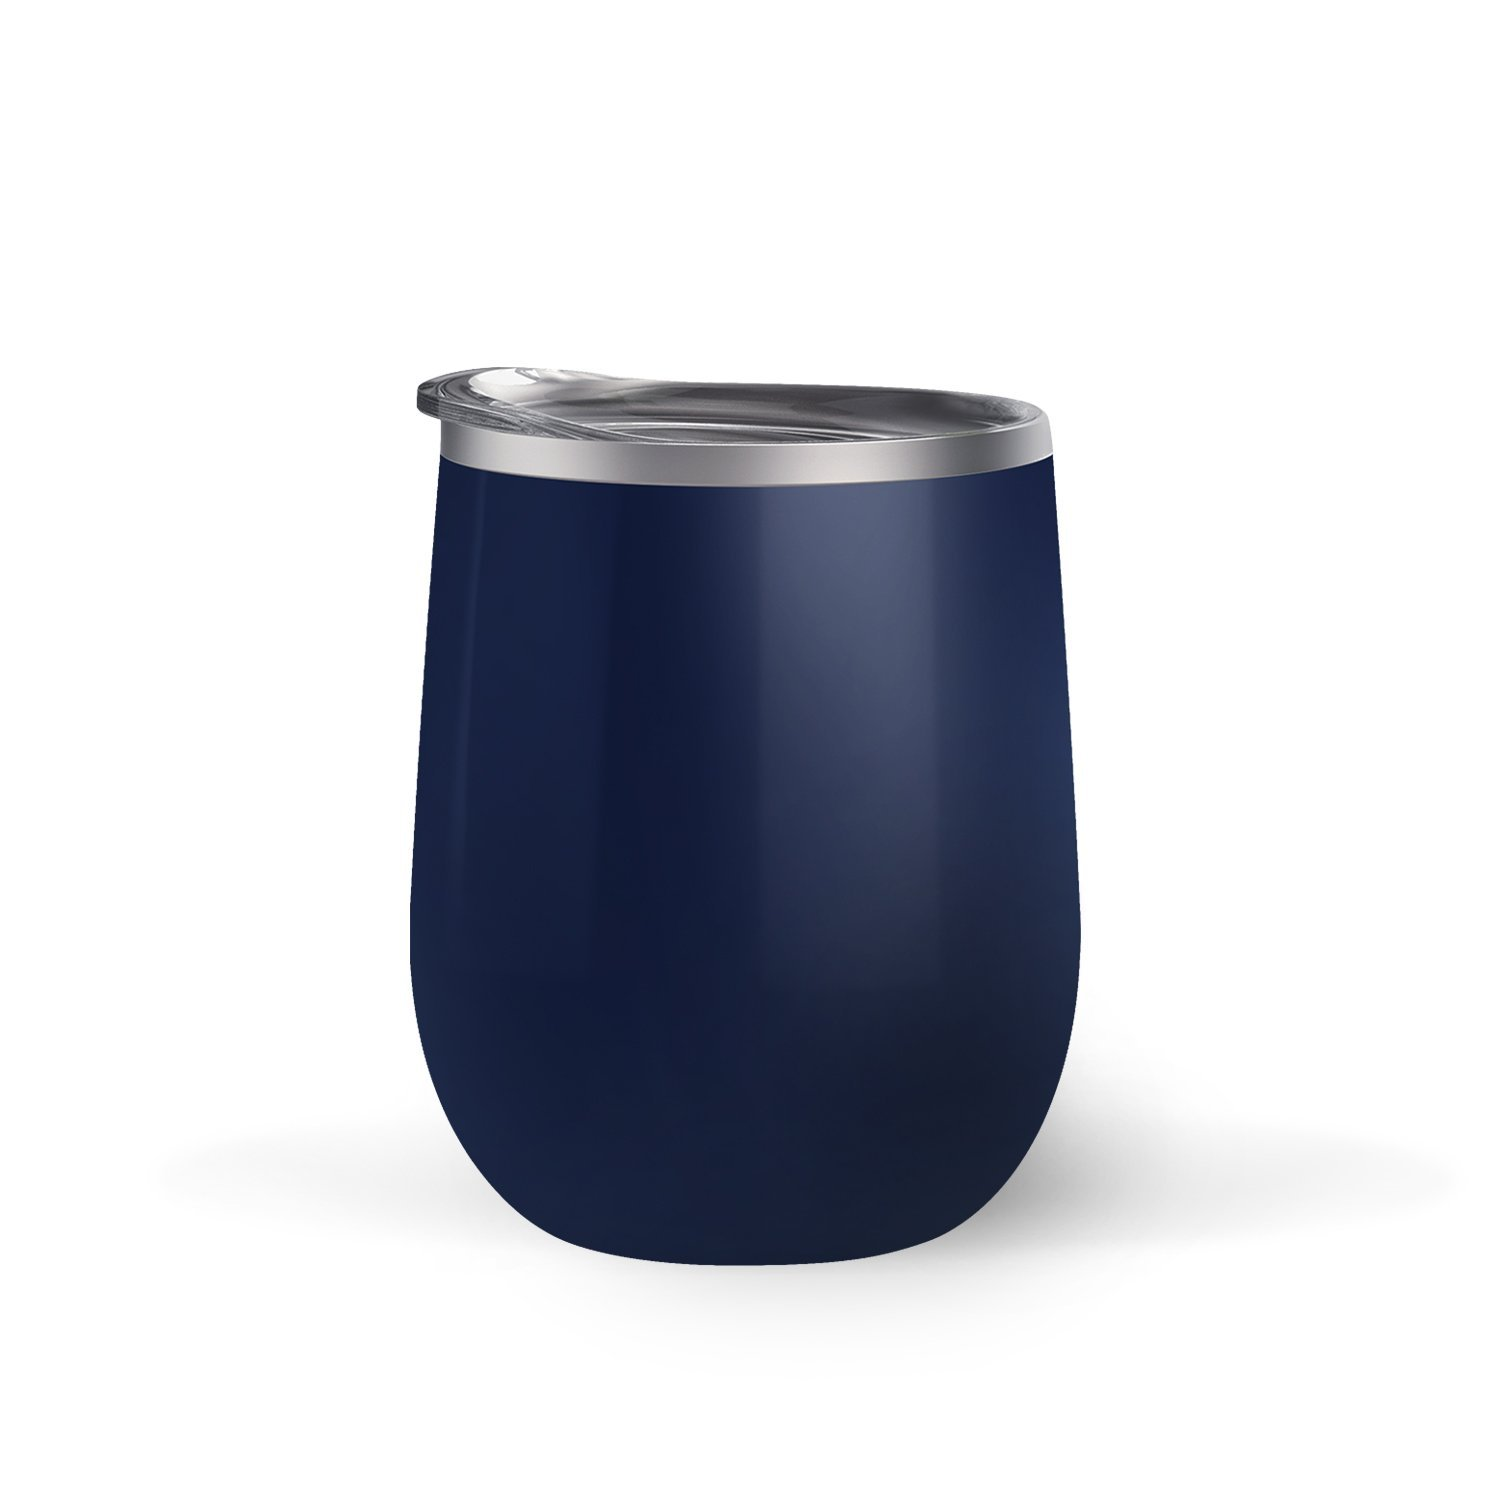 Maars Bev Steel Stemless Wine Glass Tumbler, 12 oz | Double Wall Vaccum Insulation - Midnight Blue by Maars® Drinkware (Image #3)